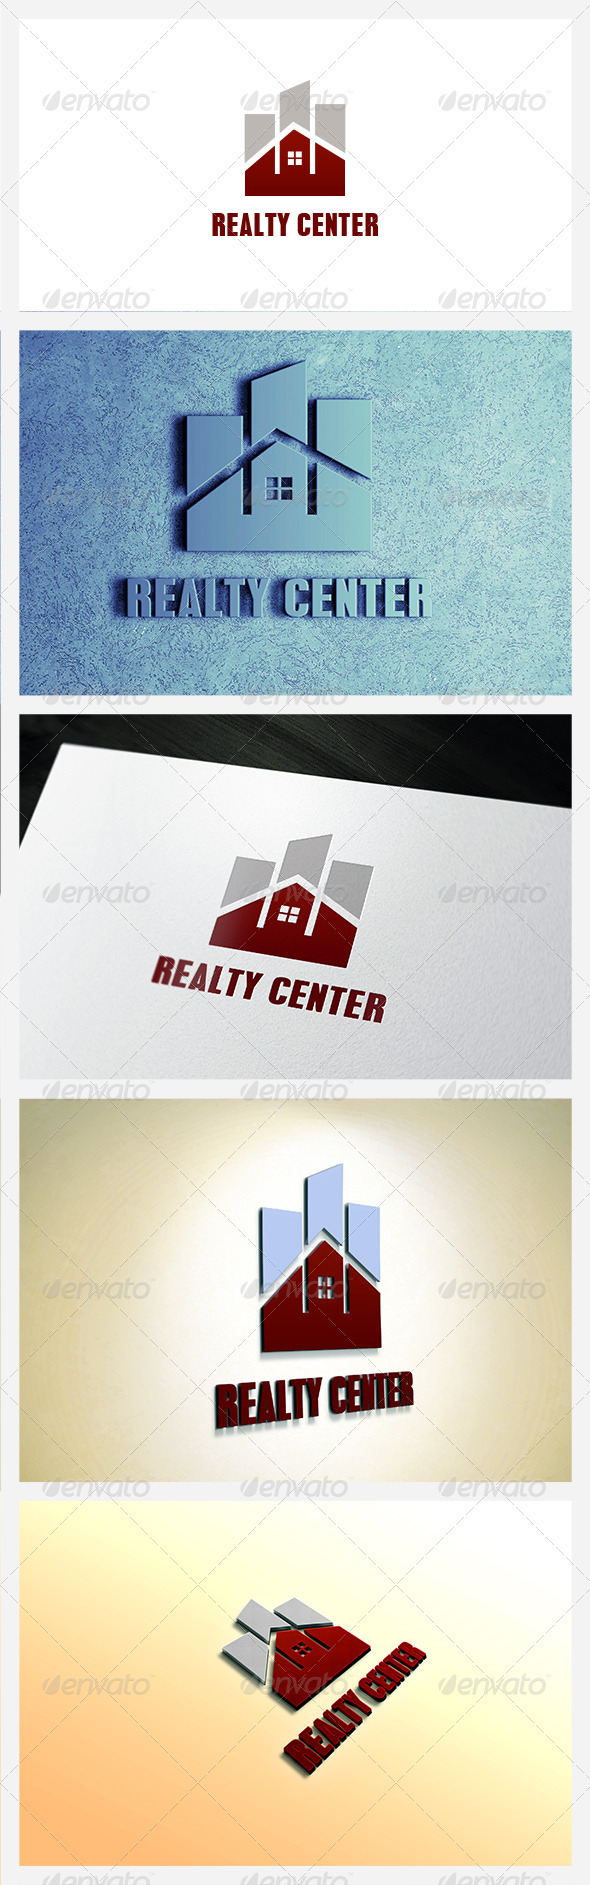 GraphicRiver Realty Center 3507660